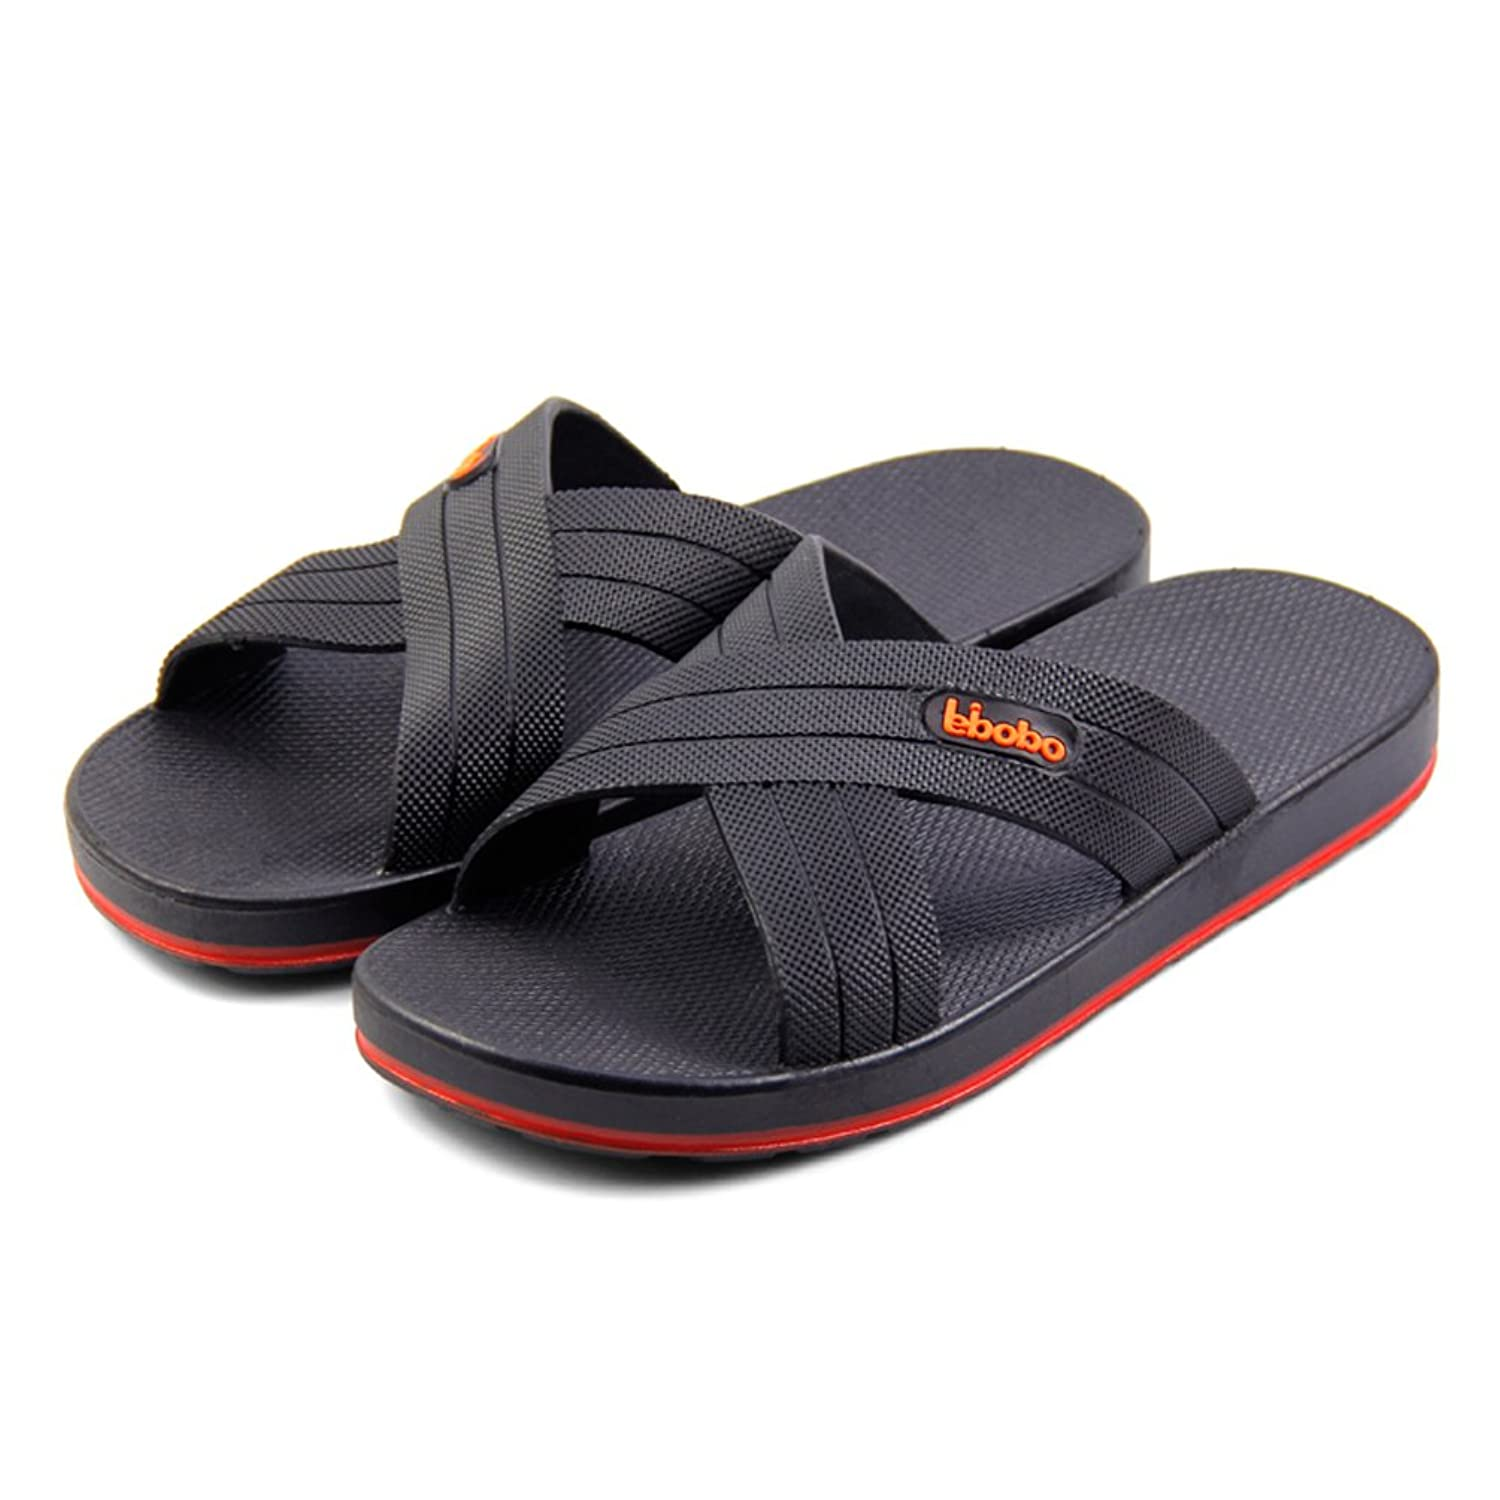 ed1143b69d36a6 2015 New Men Indoor Bath Anti-skid Slippers Free Shipping 5